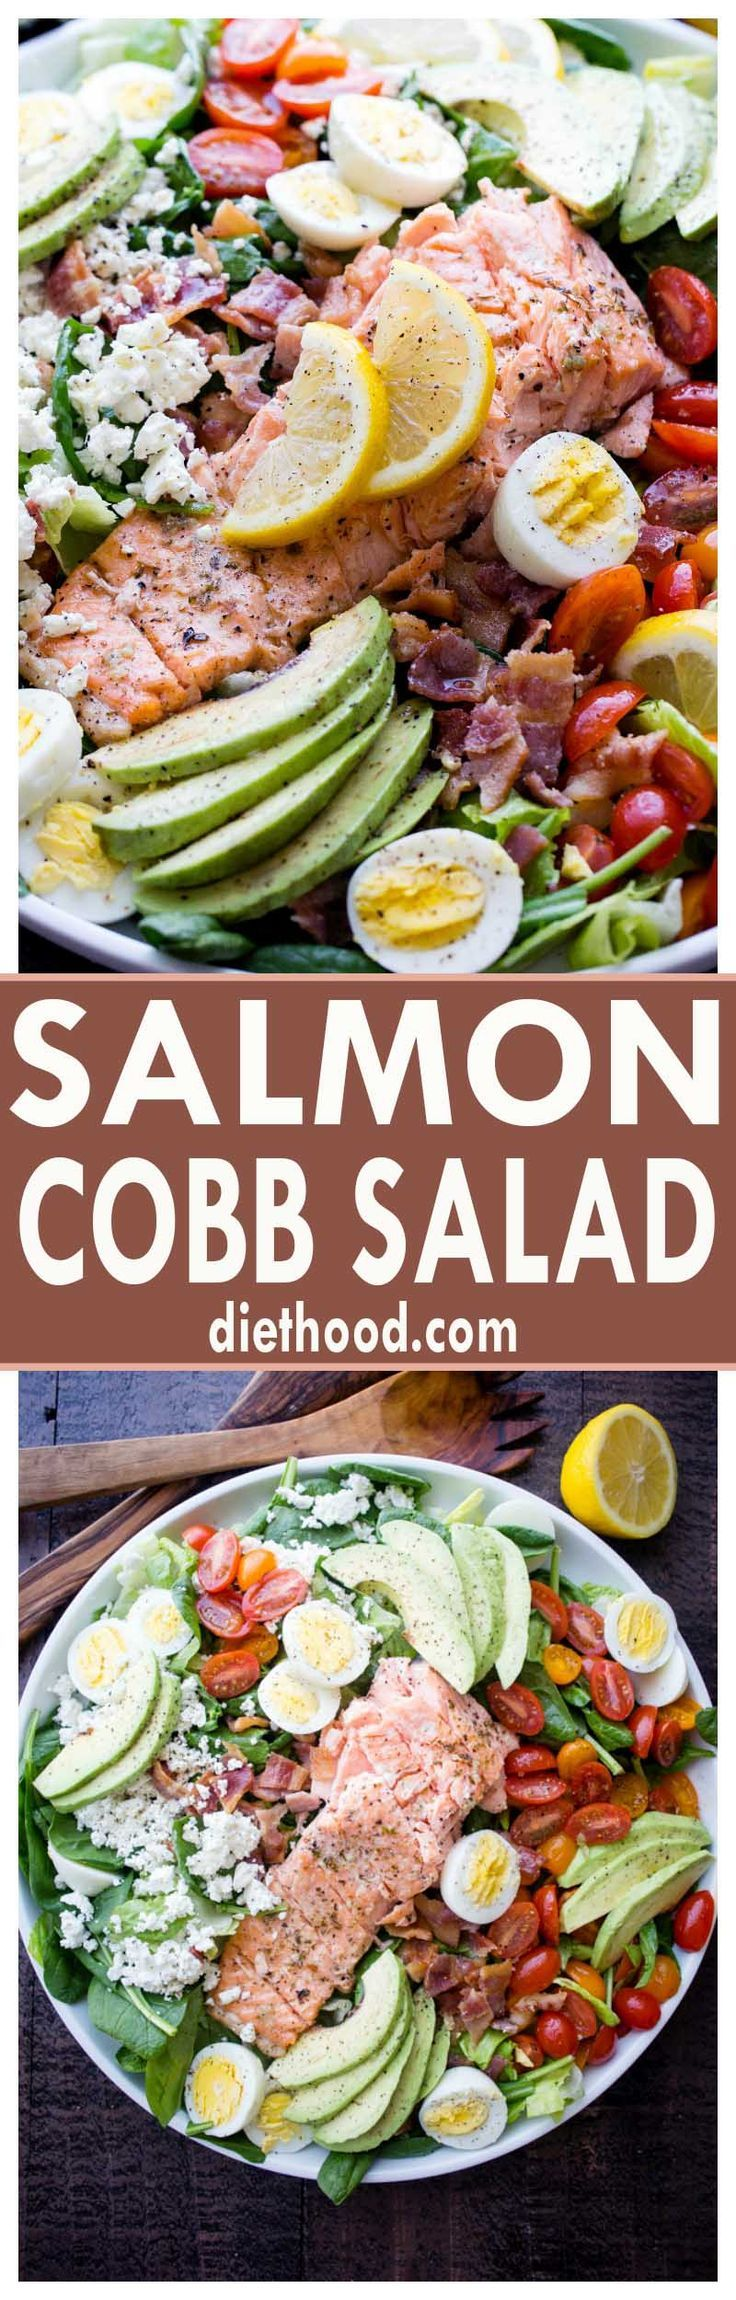 Salmon Cobb Salad with Spinach and Feta - Tender spinach and romaine lettuce topped with delicious oven-baked salmon, tomatoes, eggs, bacon, avocados and feta, all tossed together with a tangy lemon-mustard dressing.